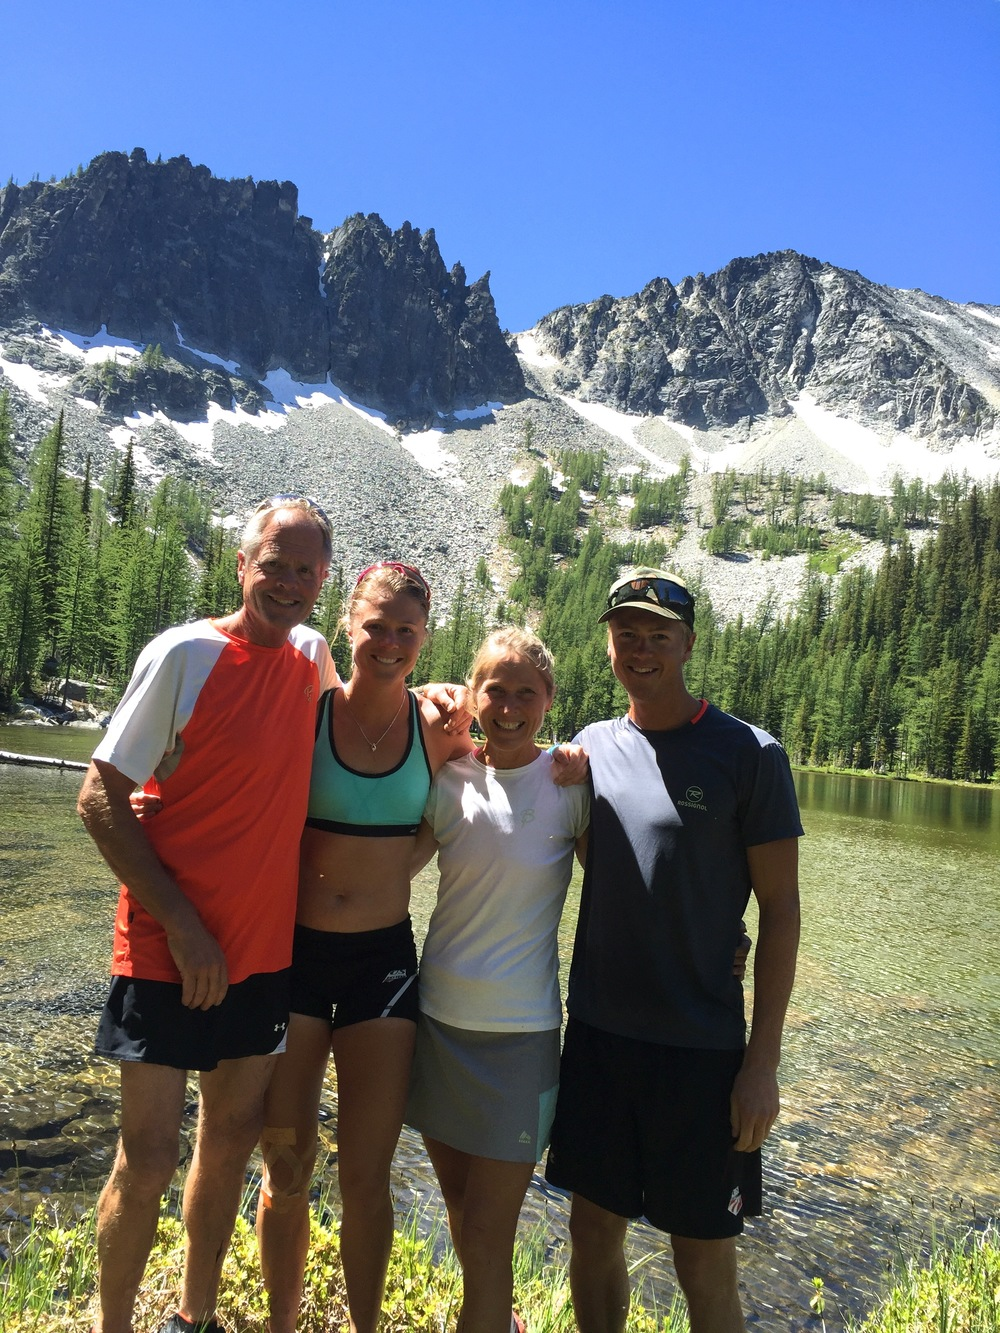 Pretty impressive my parents rock a 3 hour run no problem!